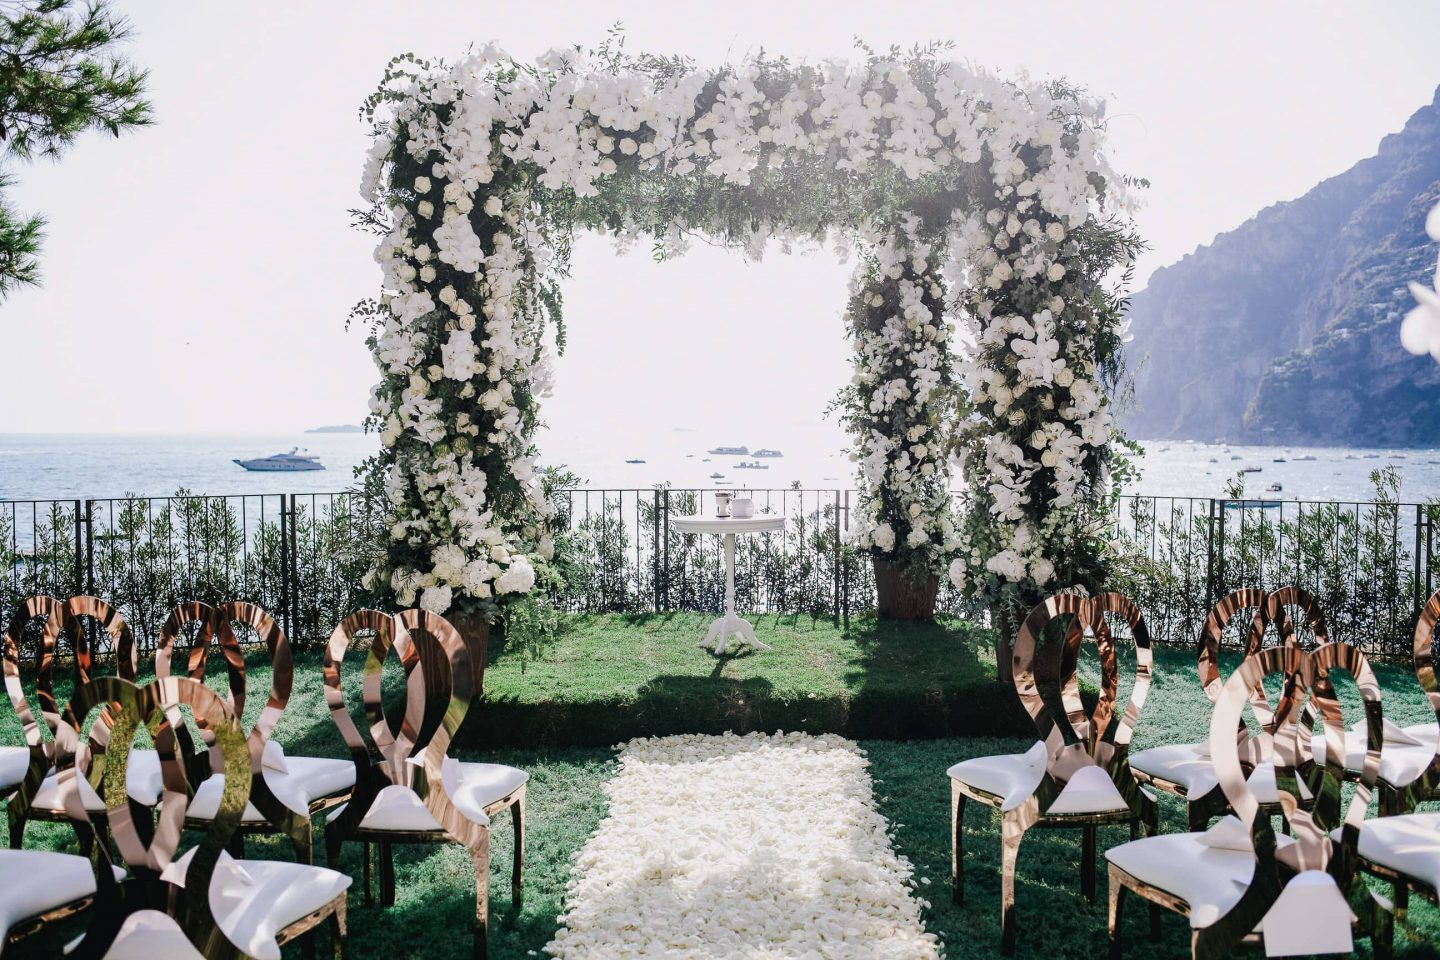 Floral arch during ceremony at this Positano wedding weekend in Villa Tre Ville | Photo by Gianni di Natale